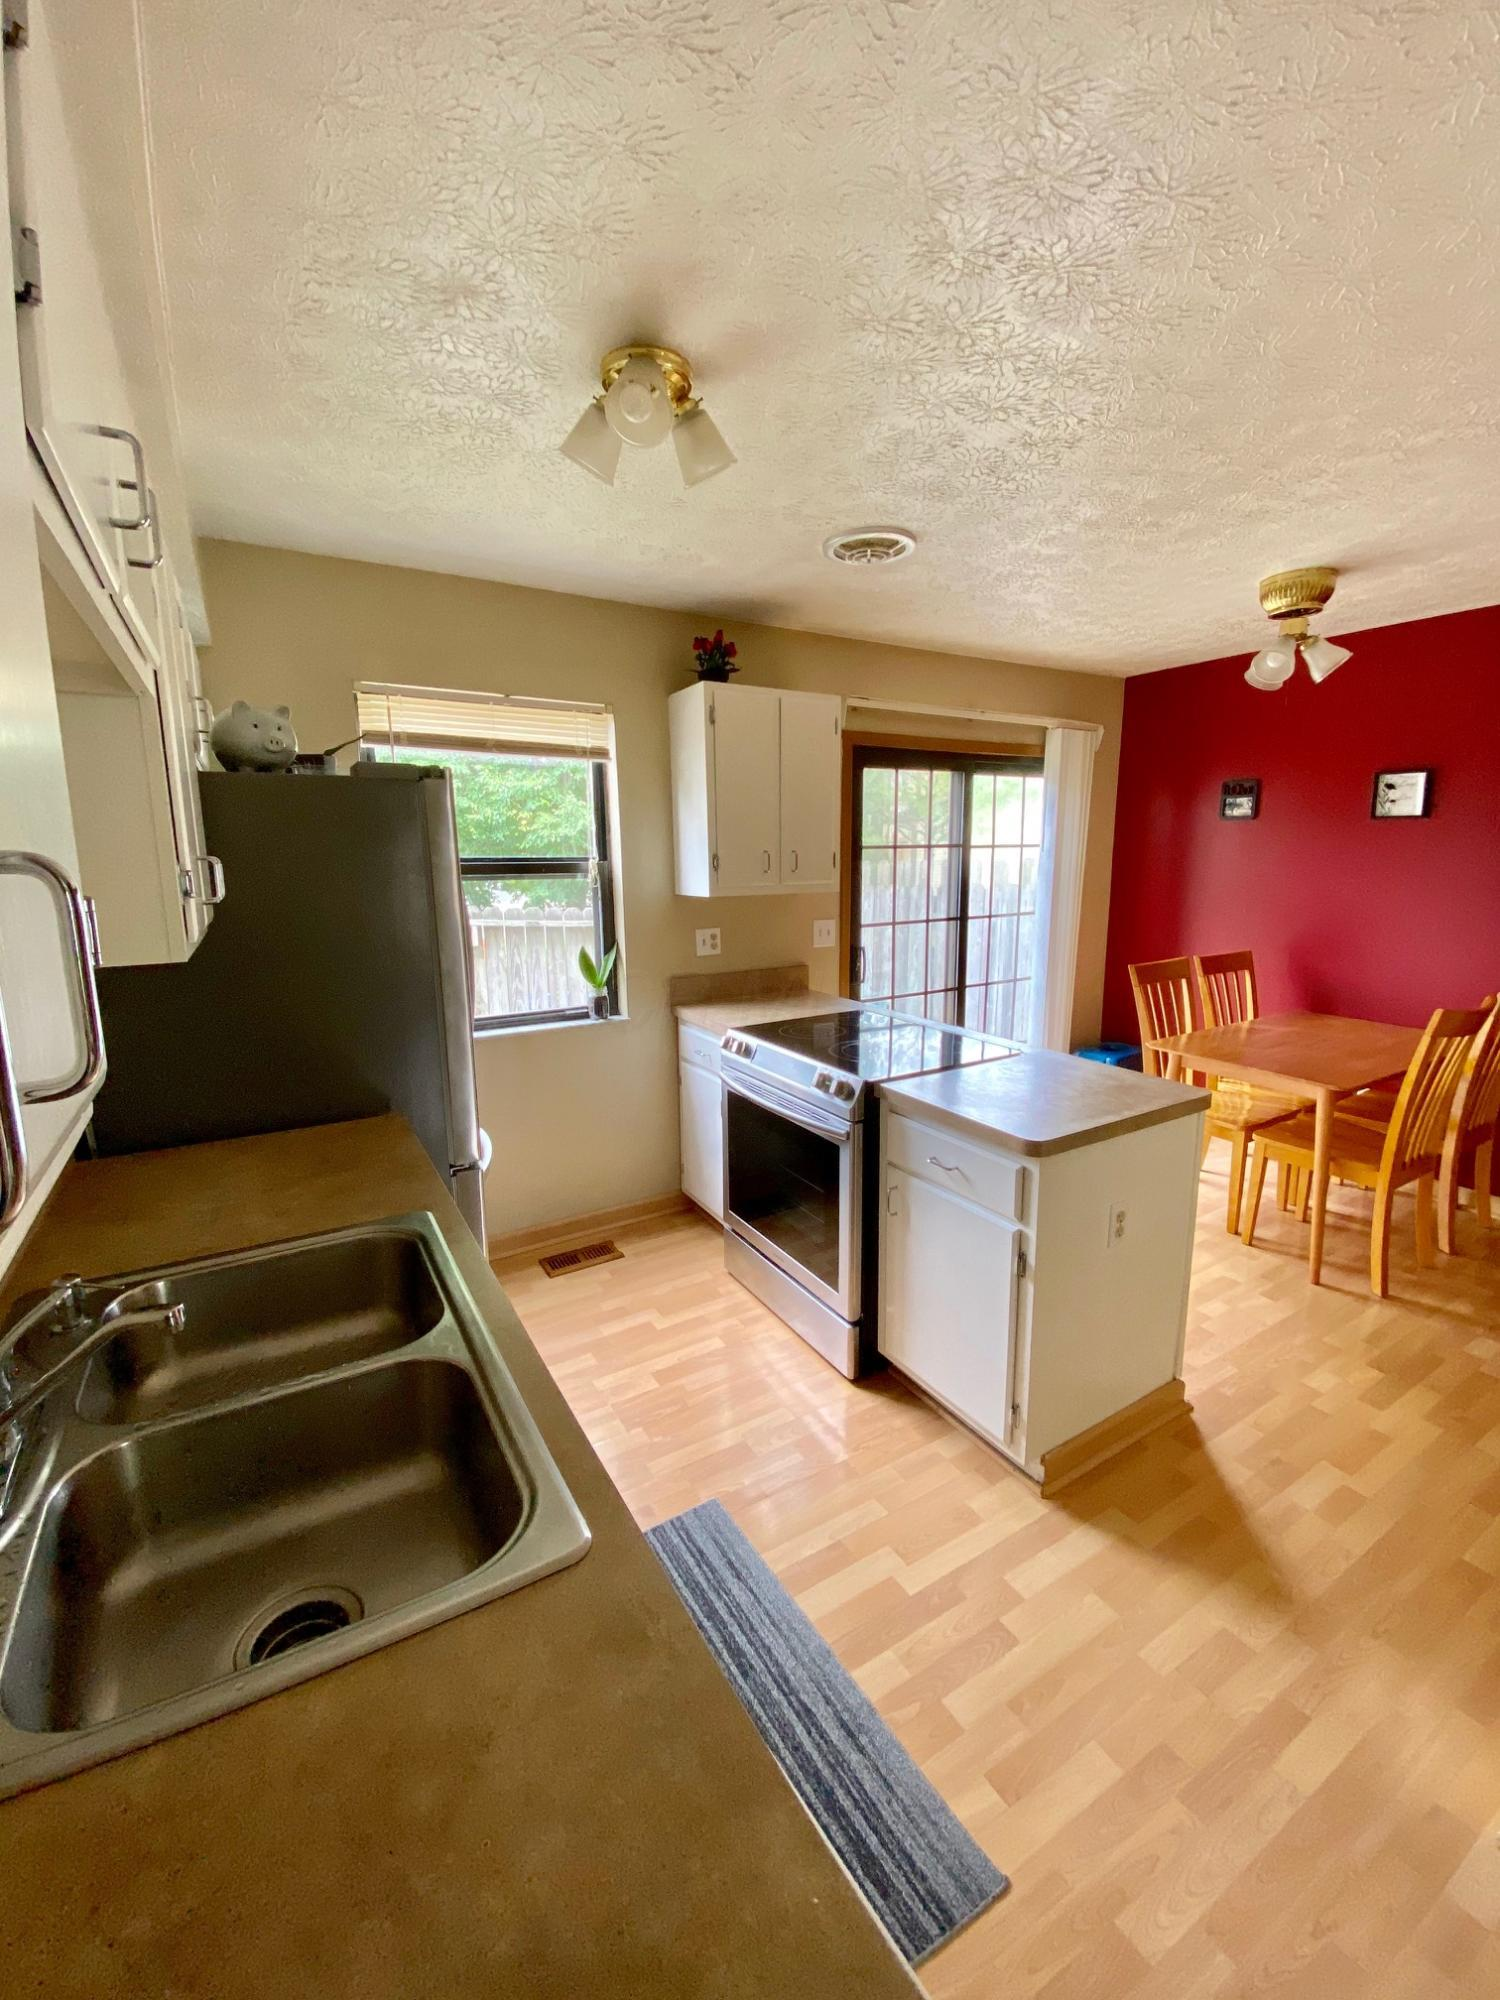 587 Mawyer Drive, Worthington, Ohio 43085, 3 Bedrooms Bedrooms, ,2 BathroomsBathrooms,Residential,For Sale,Mawyer,220019694